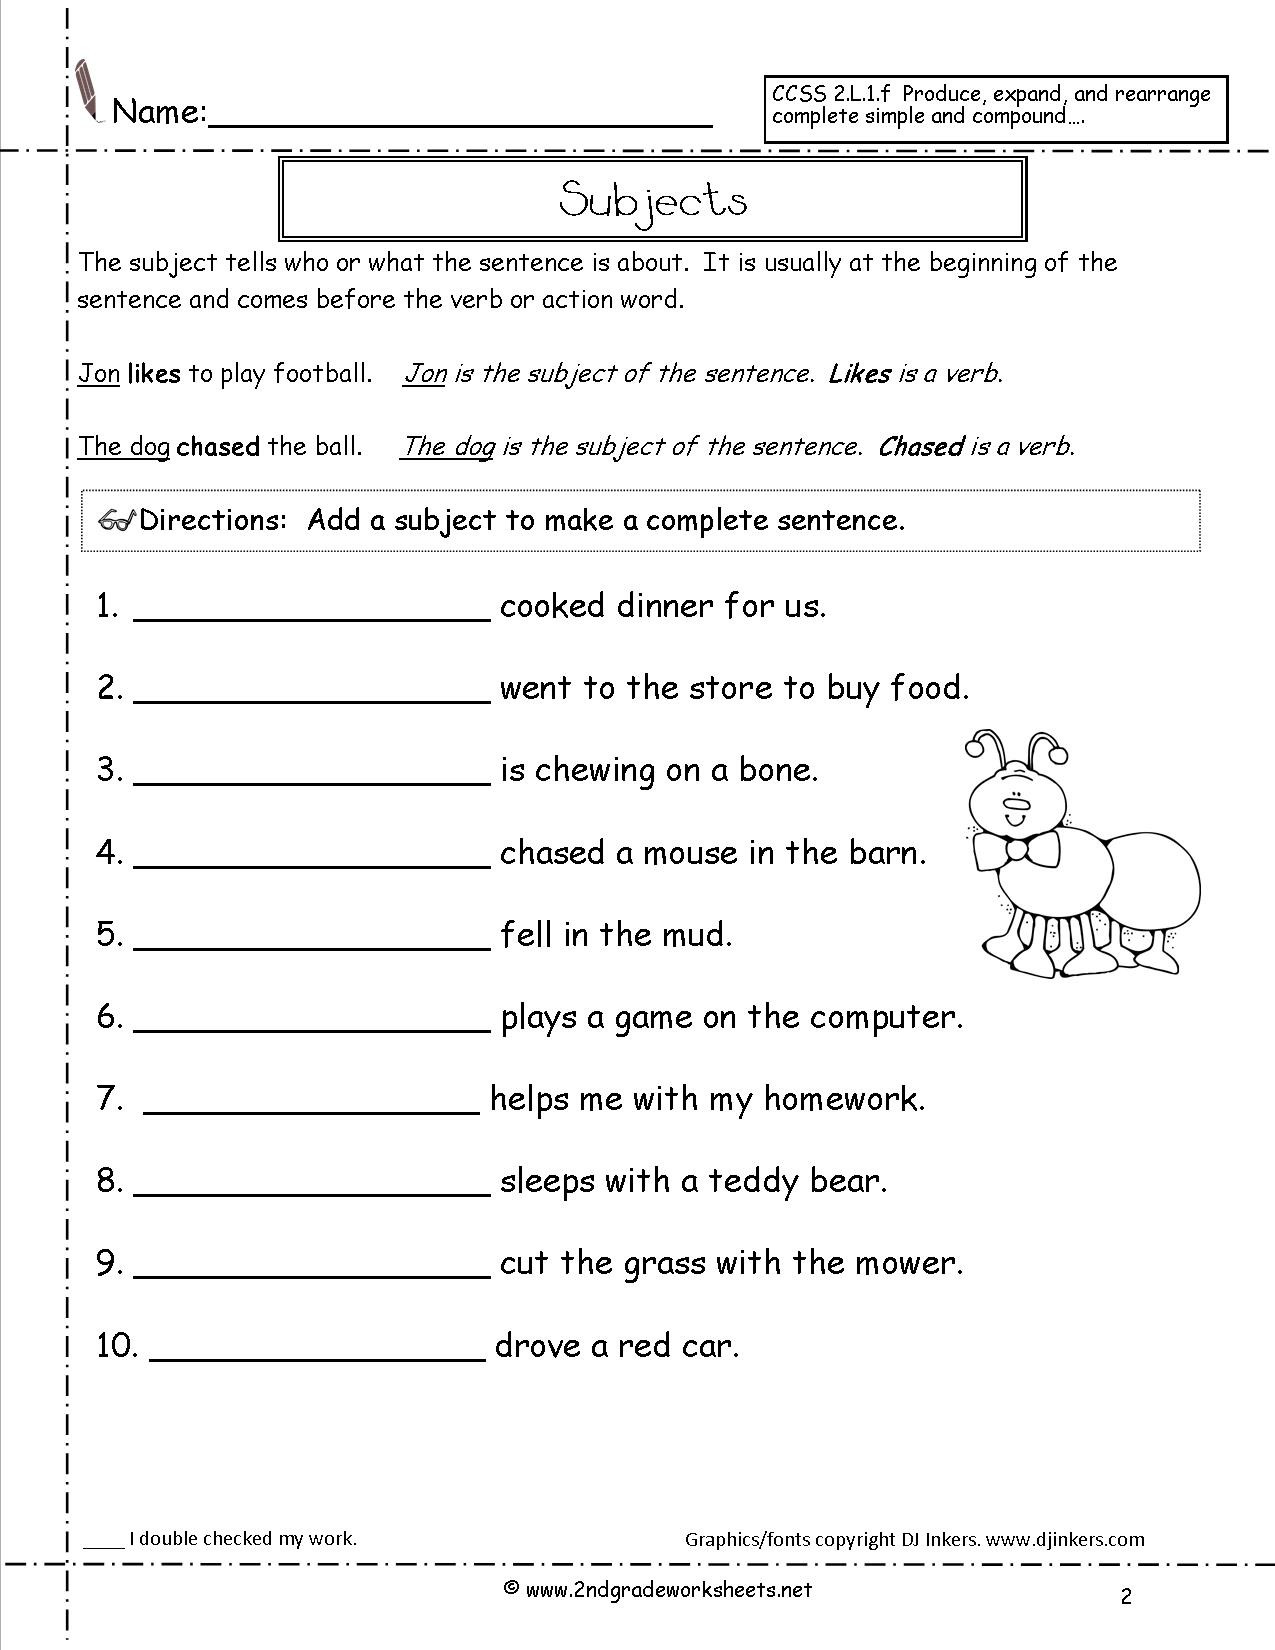 Simple Sentences Worksheet 3rd Grade Basic Math Words Printable Cursive Worksheets 3rd Grade